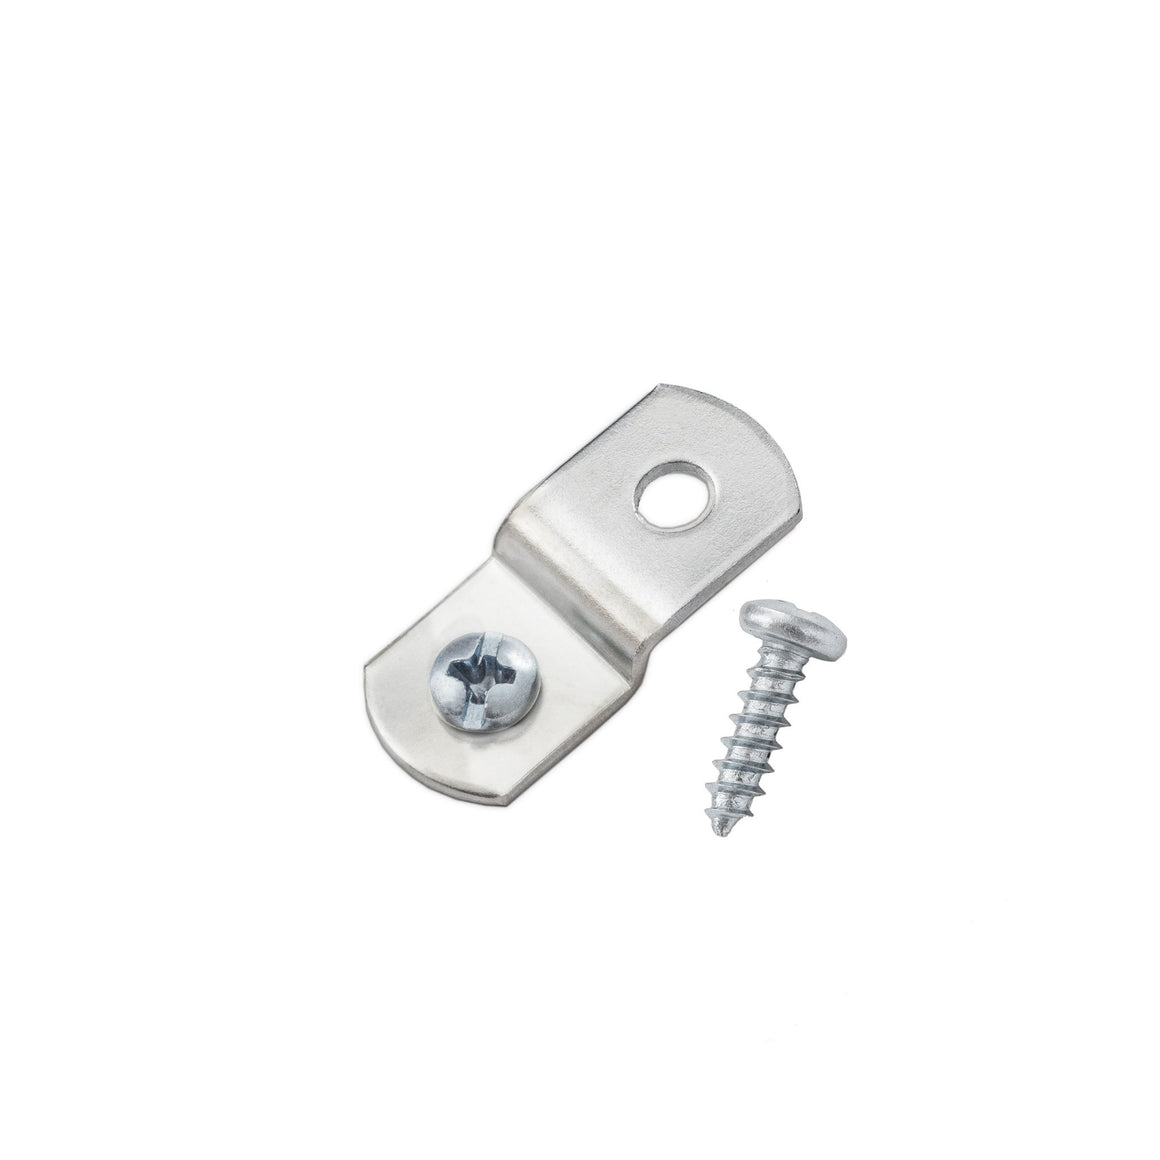 "1/8"" Offset Clips w/ Screws, Picture Frame Hardware"